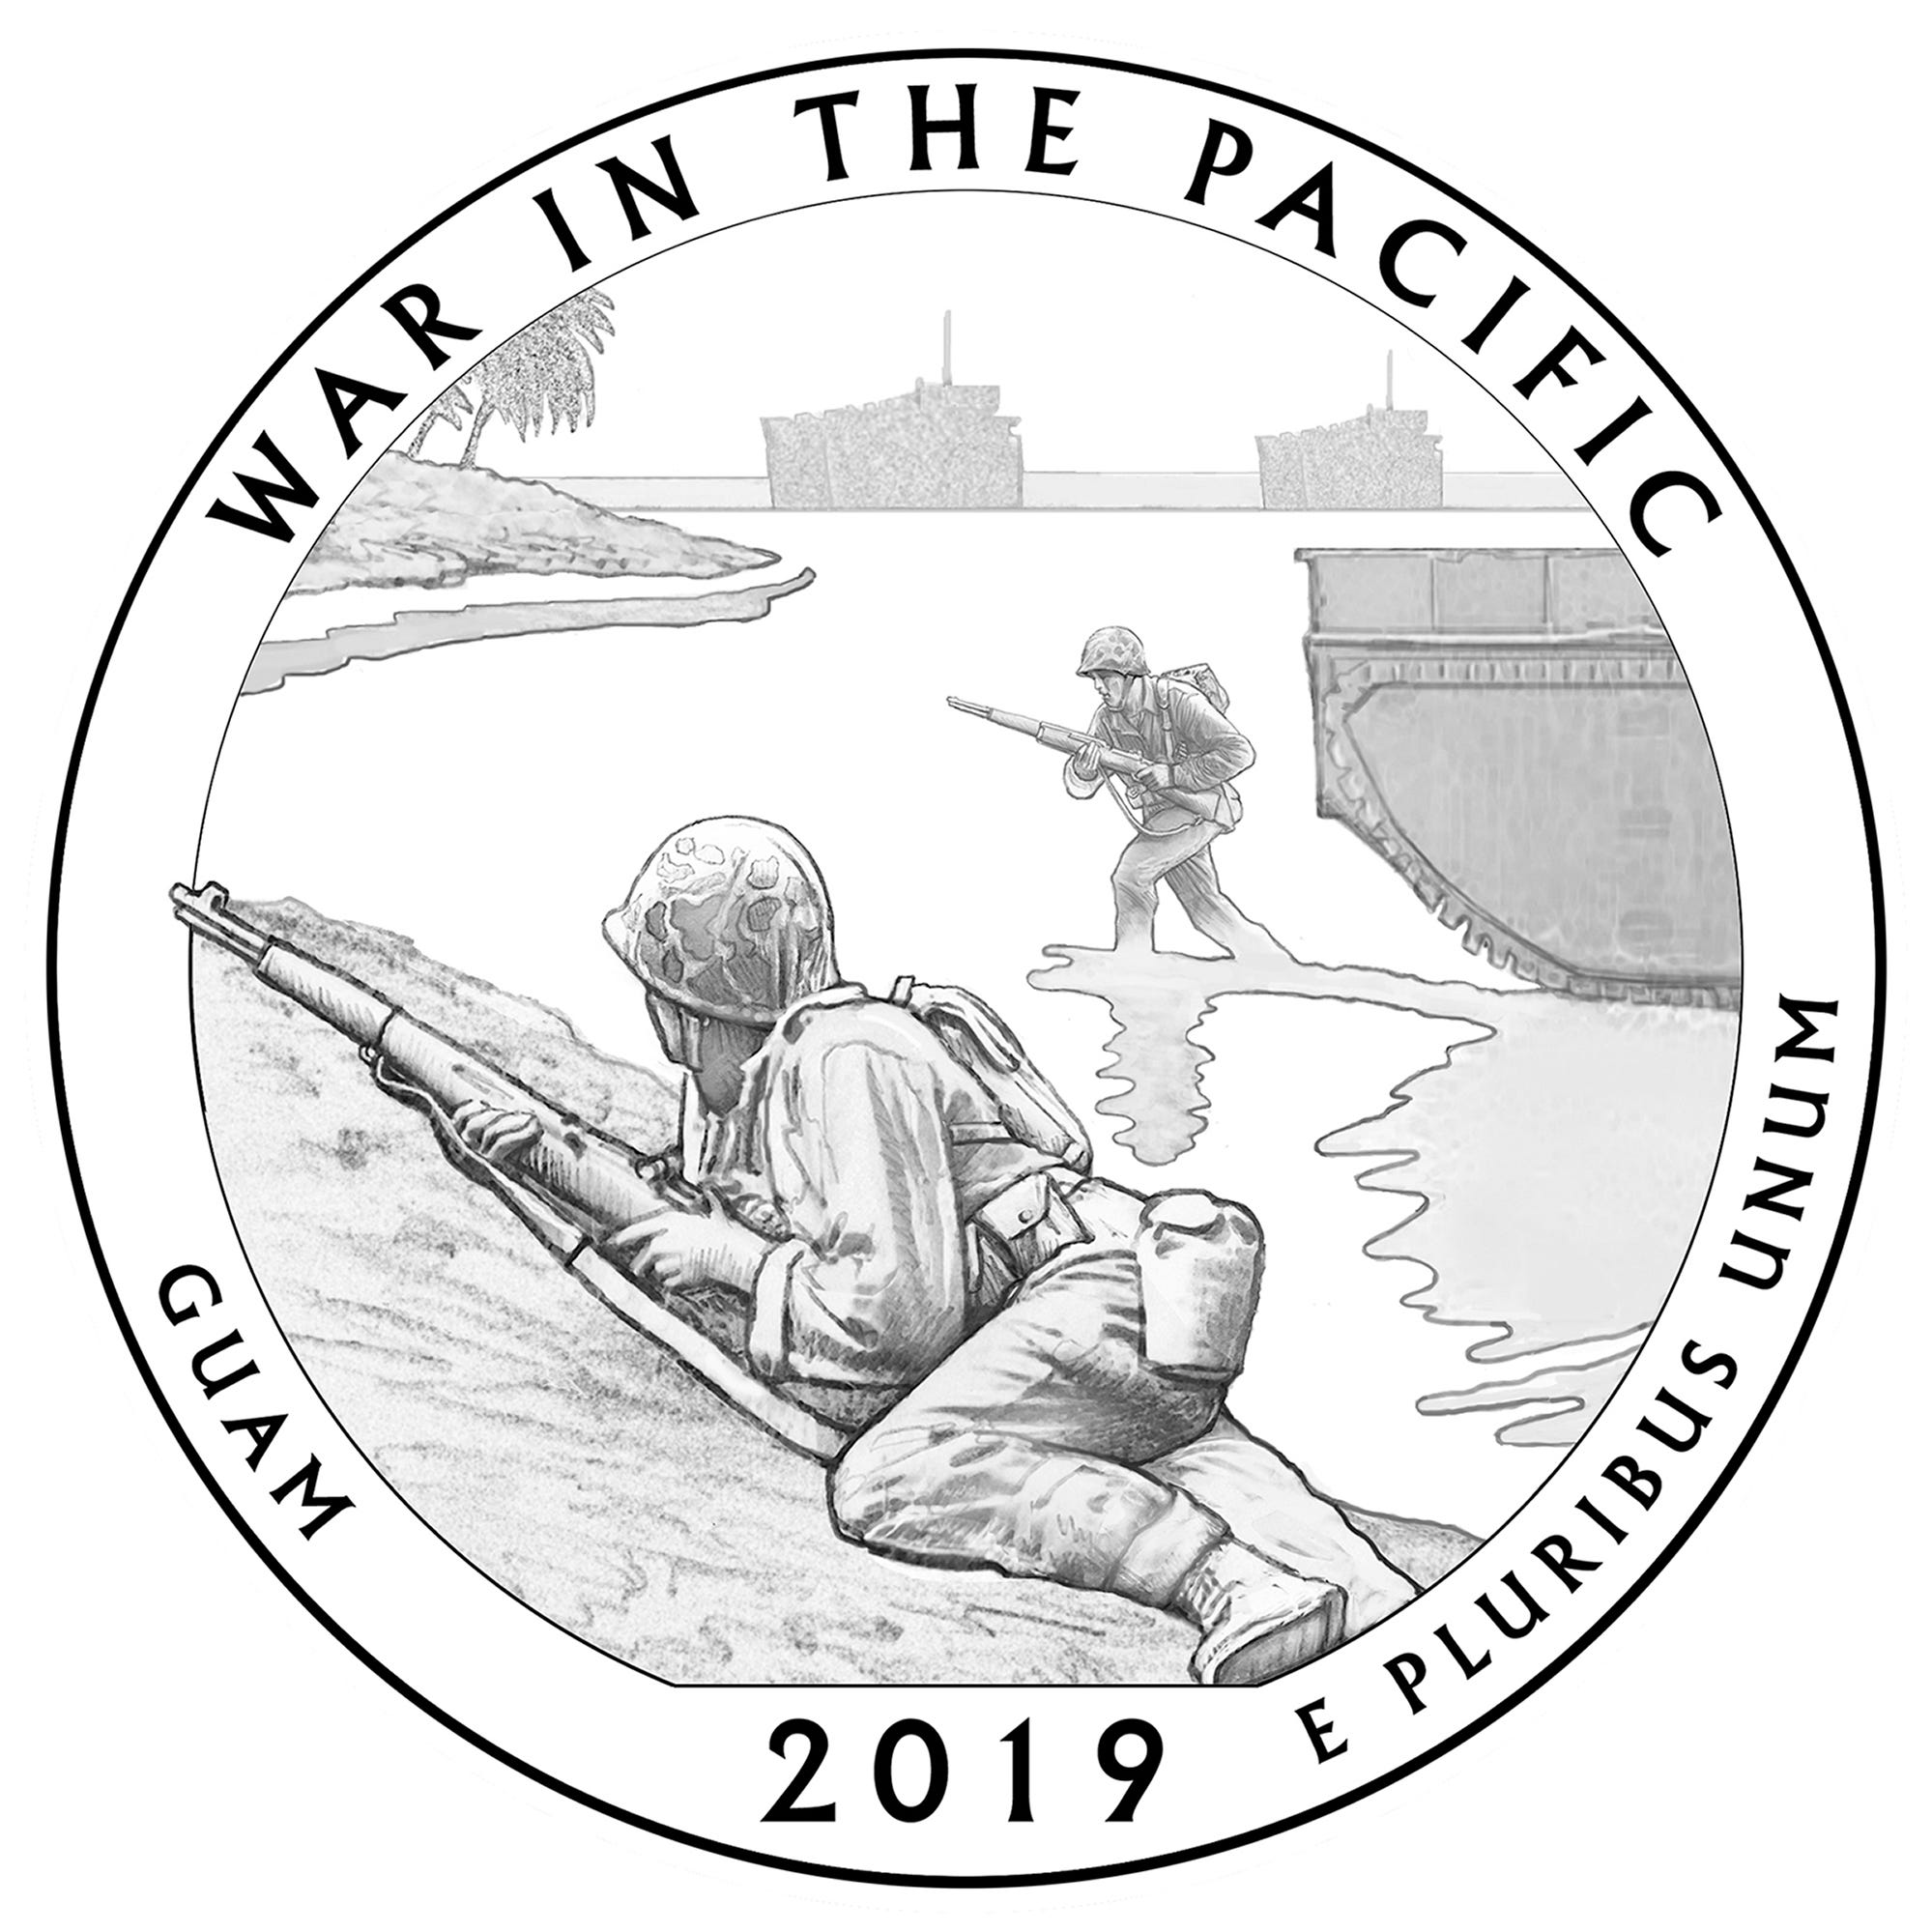 U.S. Mint to release new quarter featuring Guam's War in the Pacific National Historical Park